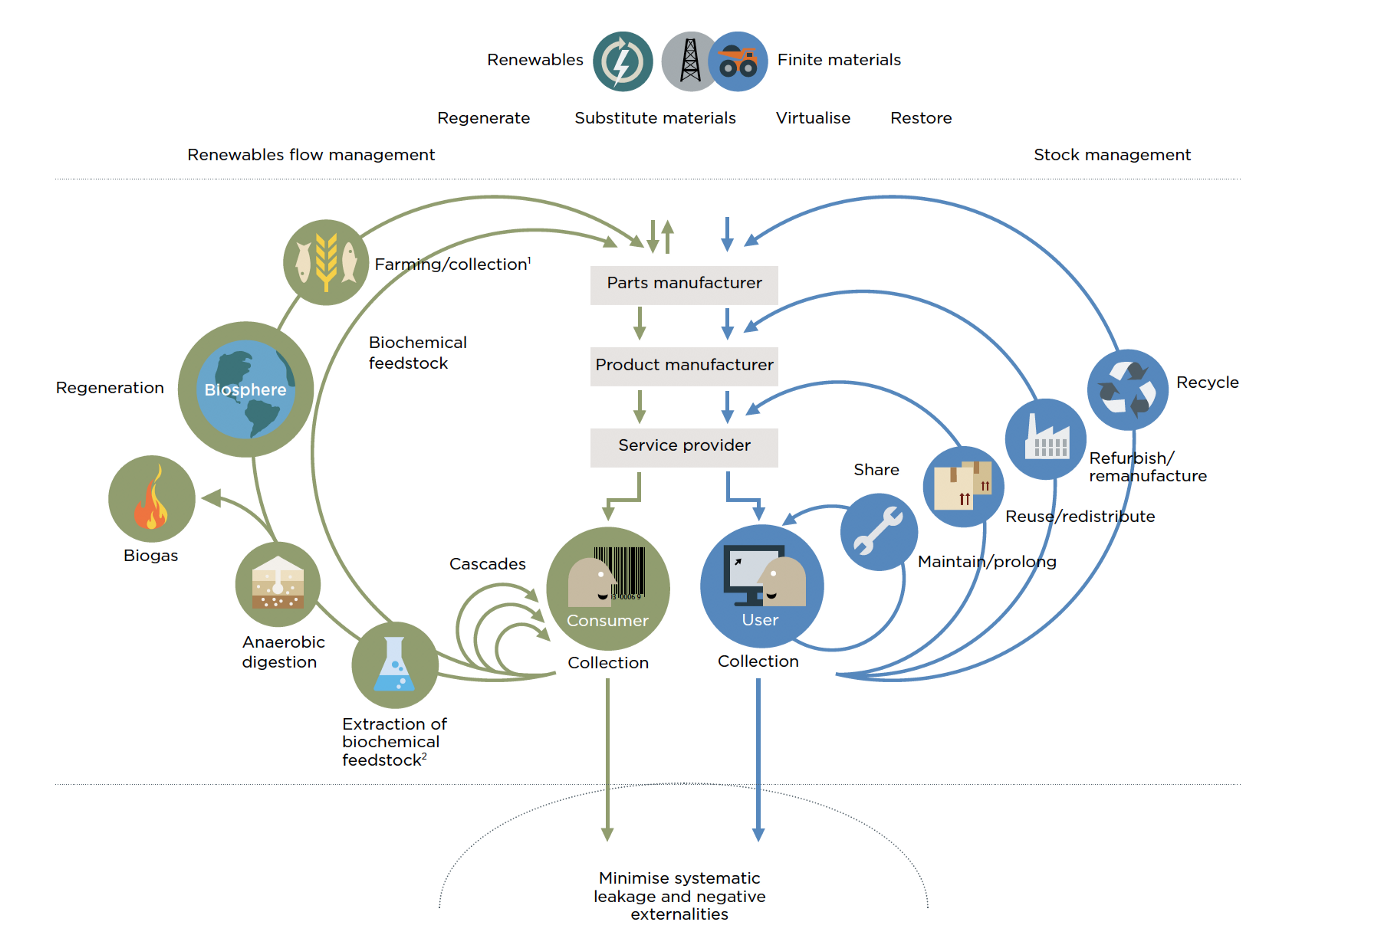 A diagram explaining the product lifecycle in a circular economy.